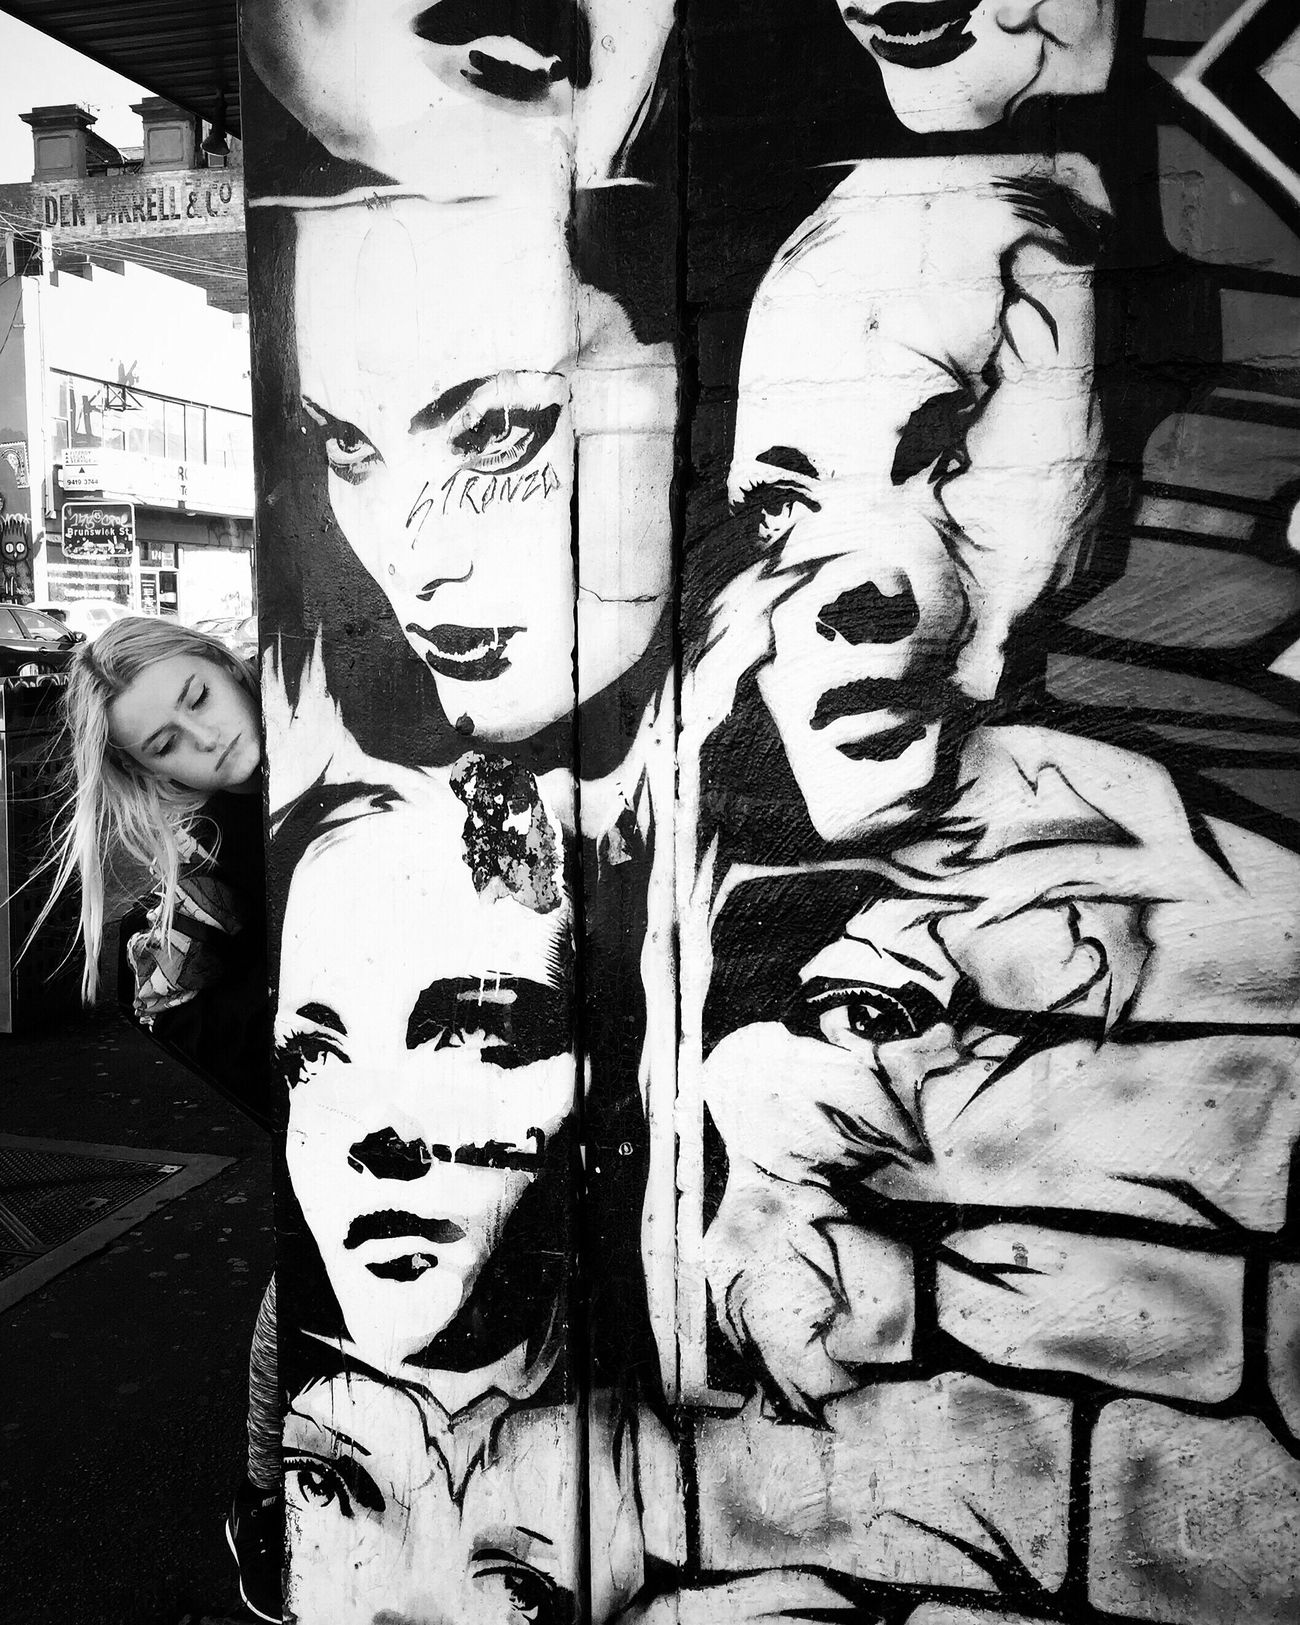 Two Is Better Than One Shootermag_australia Shootermag Getty Images TheMinimals (less Edit Juxt Photography) Blackandwhite Photography Black And White AMPt_ Community Streetphotography Black And White Photography Frolicking Friday... Love ♥ Mermaid